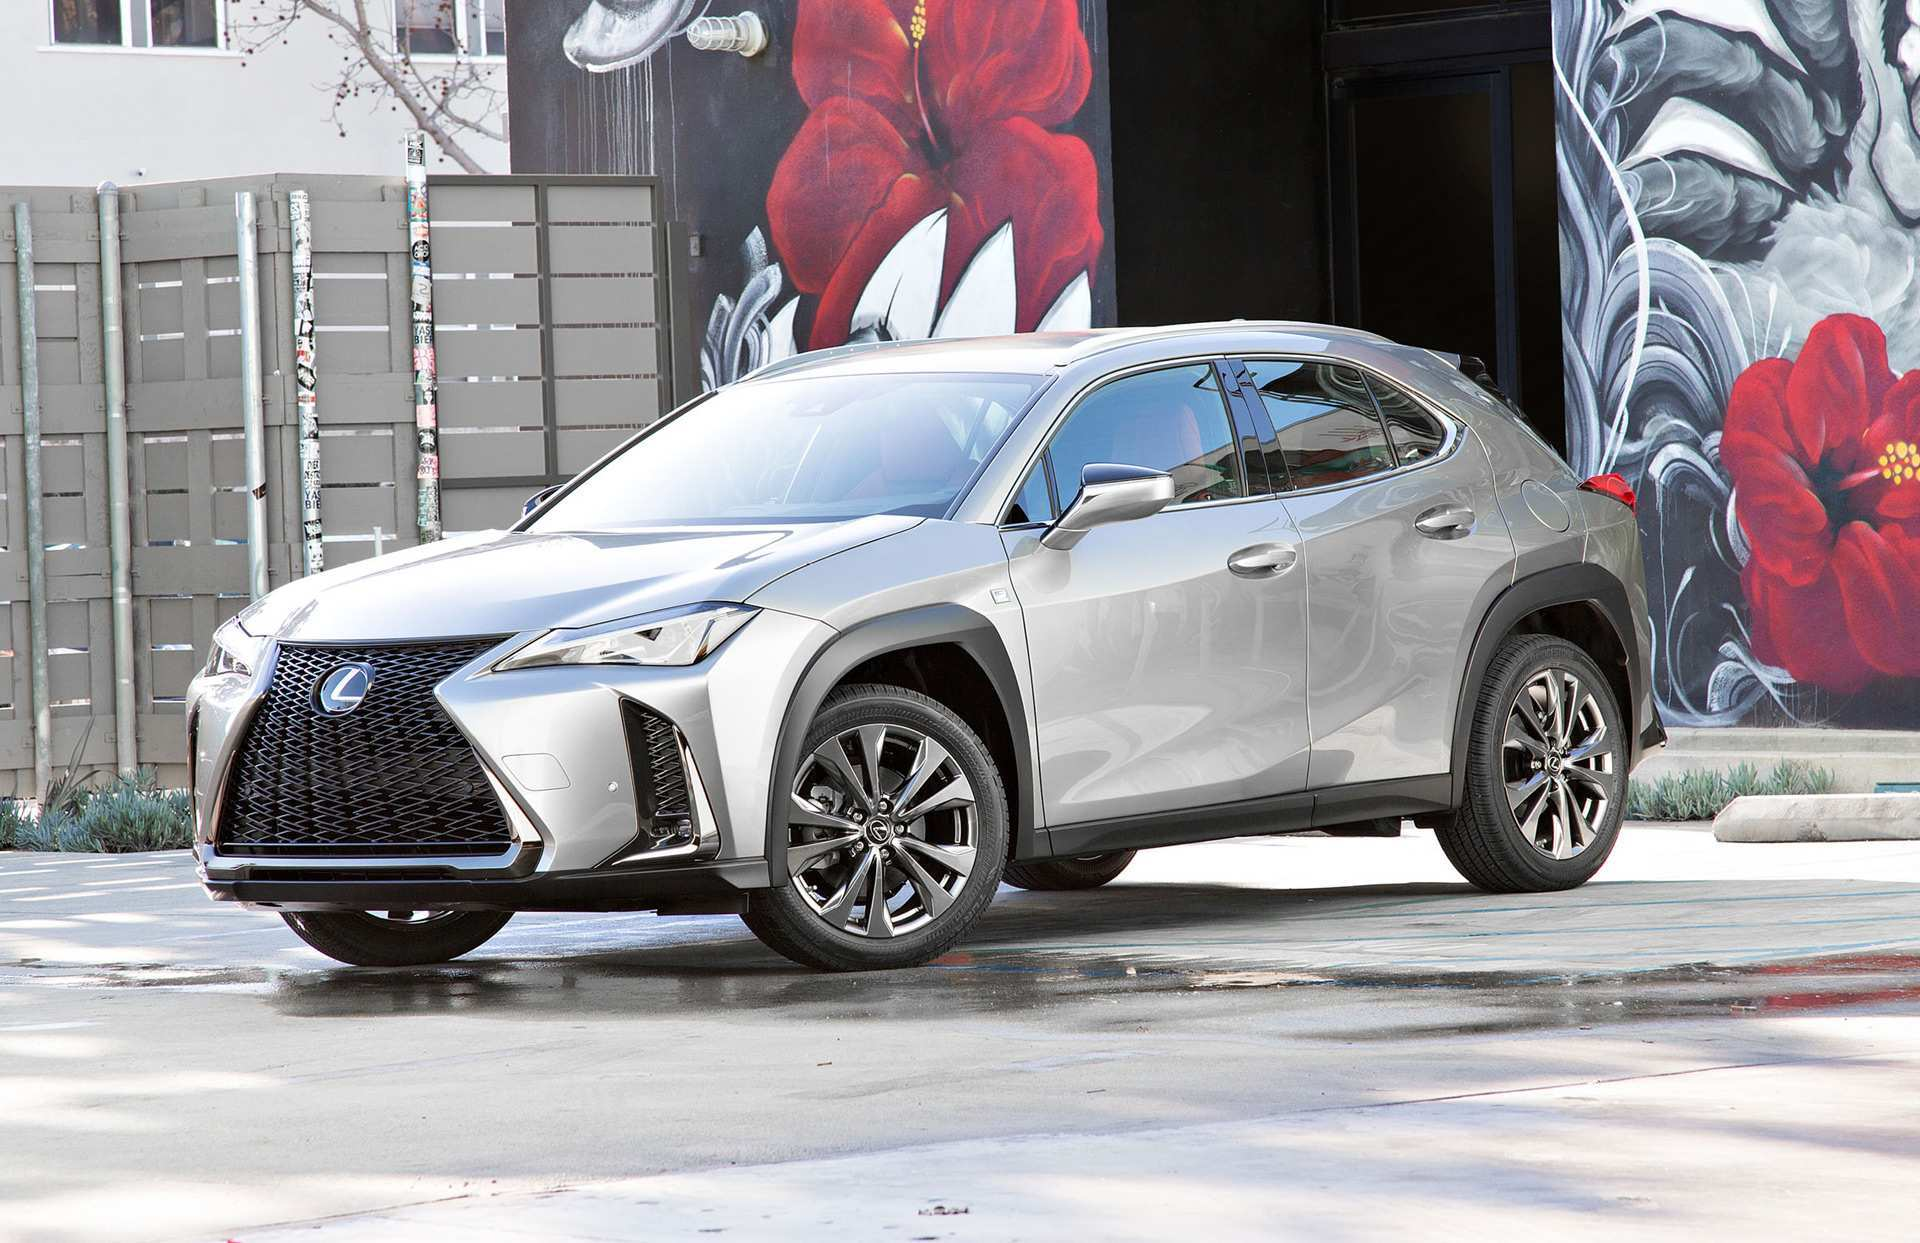 15 New Lexus Ux 2019 Price 2 Rumors